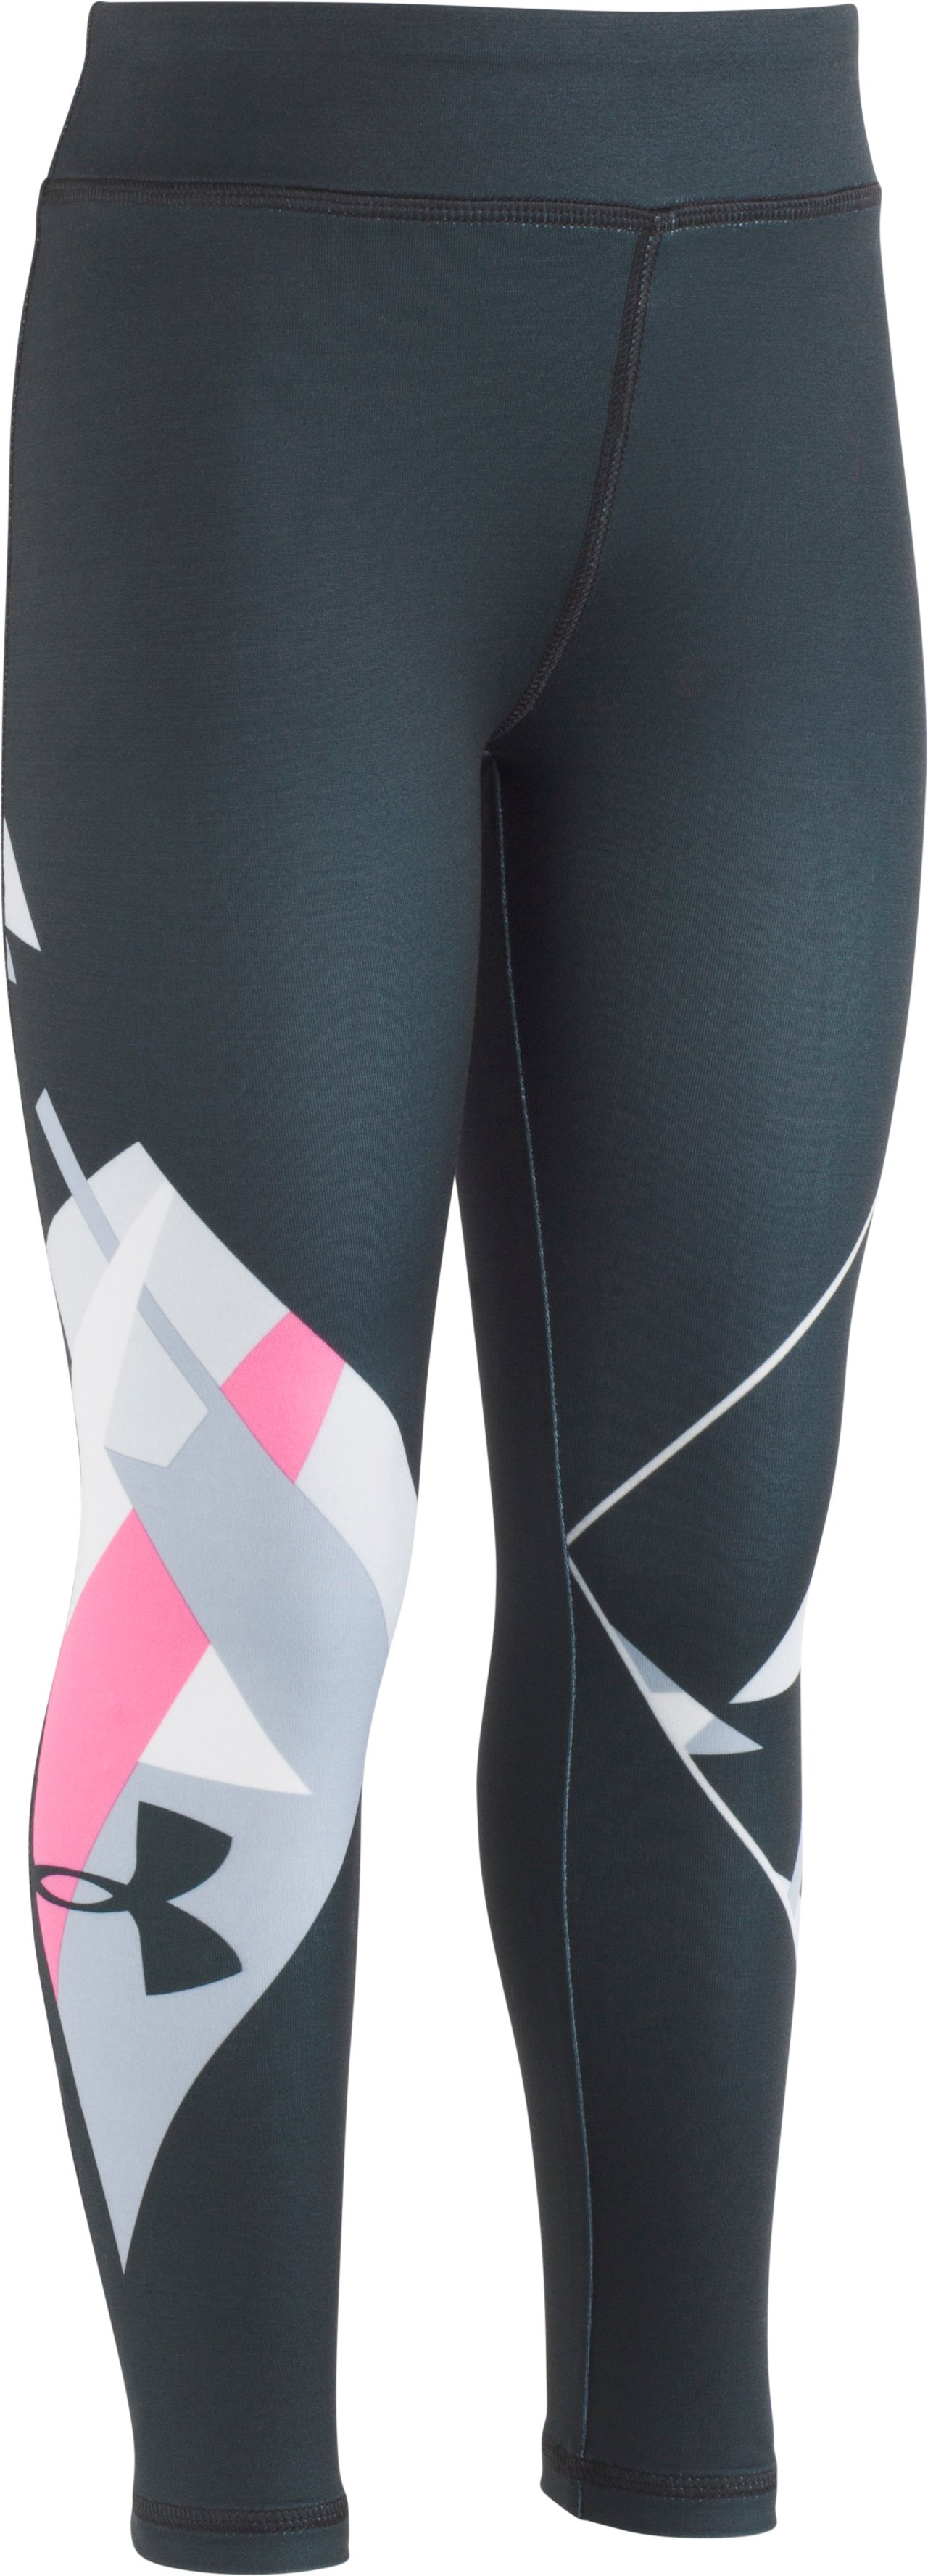 Girls' Toddler UA Infinity Leggings, Black